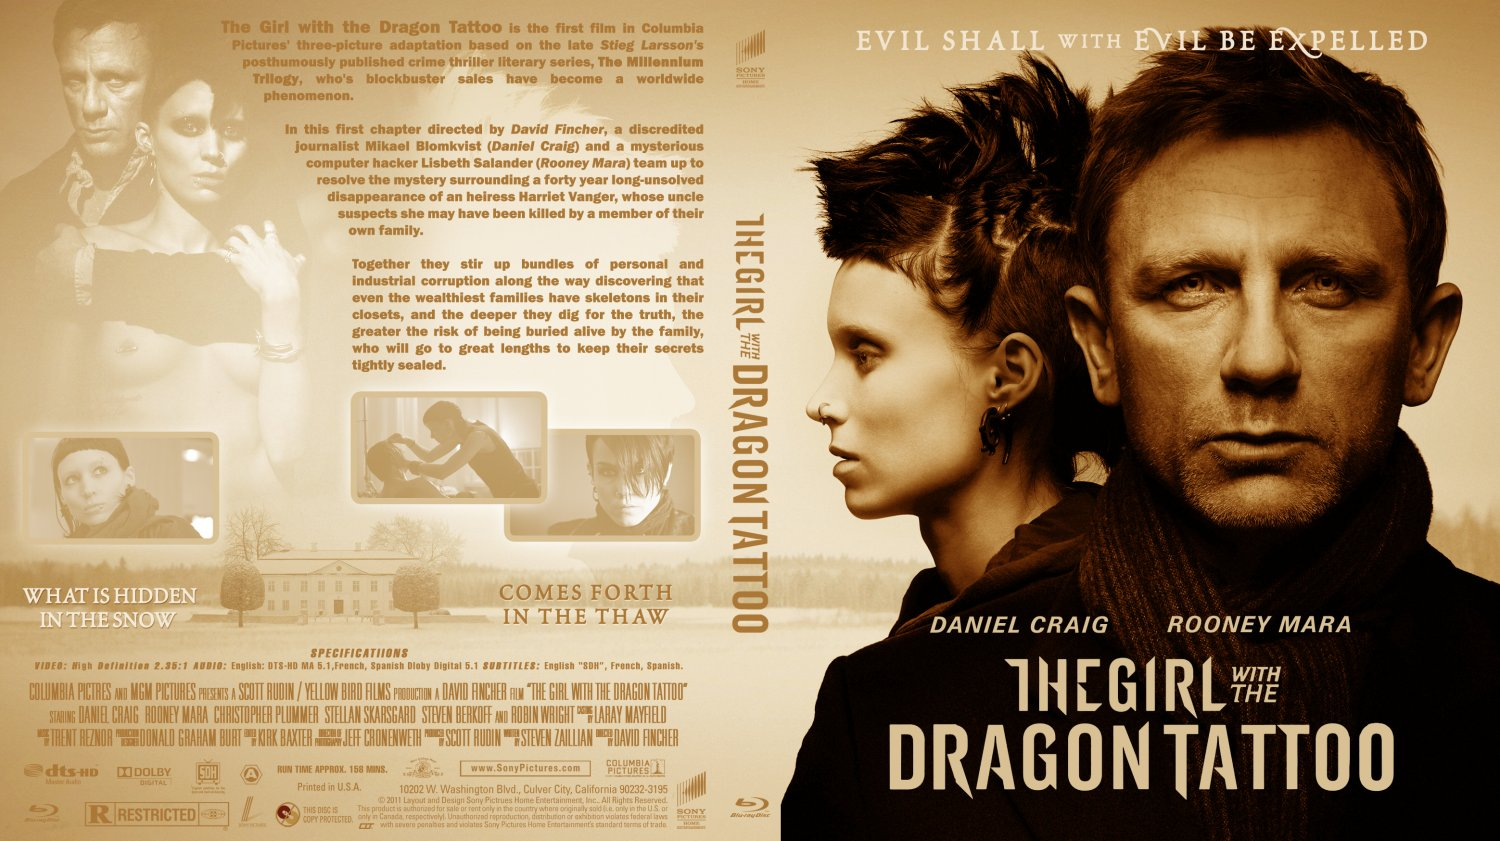 The Girl with the Dragon Tattoo Blu-ray Cover